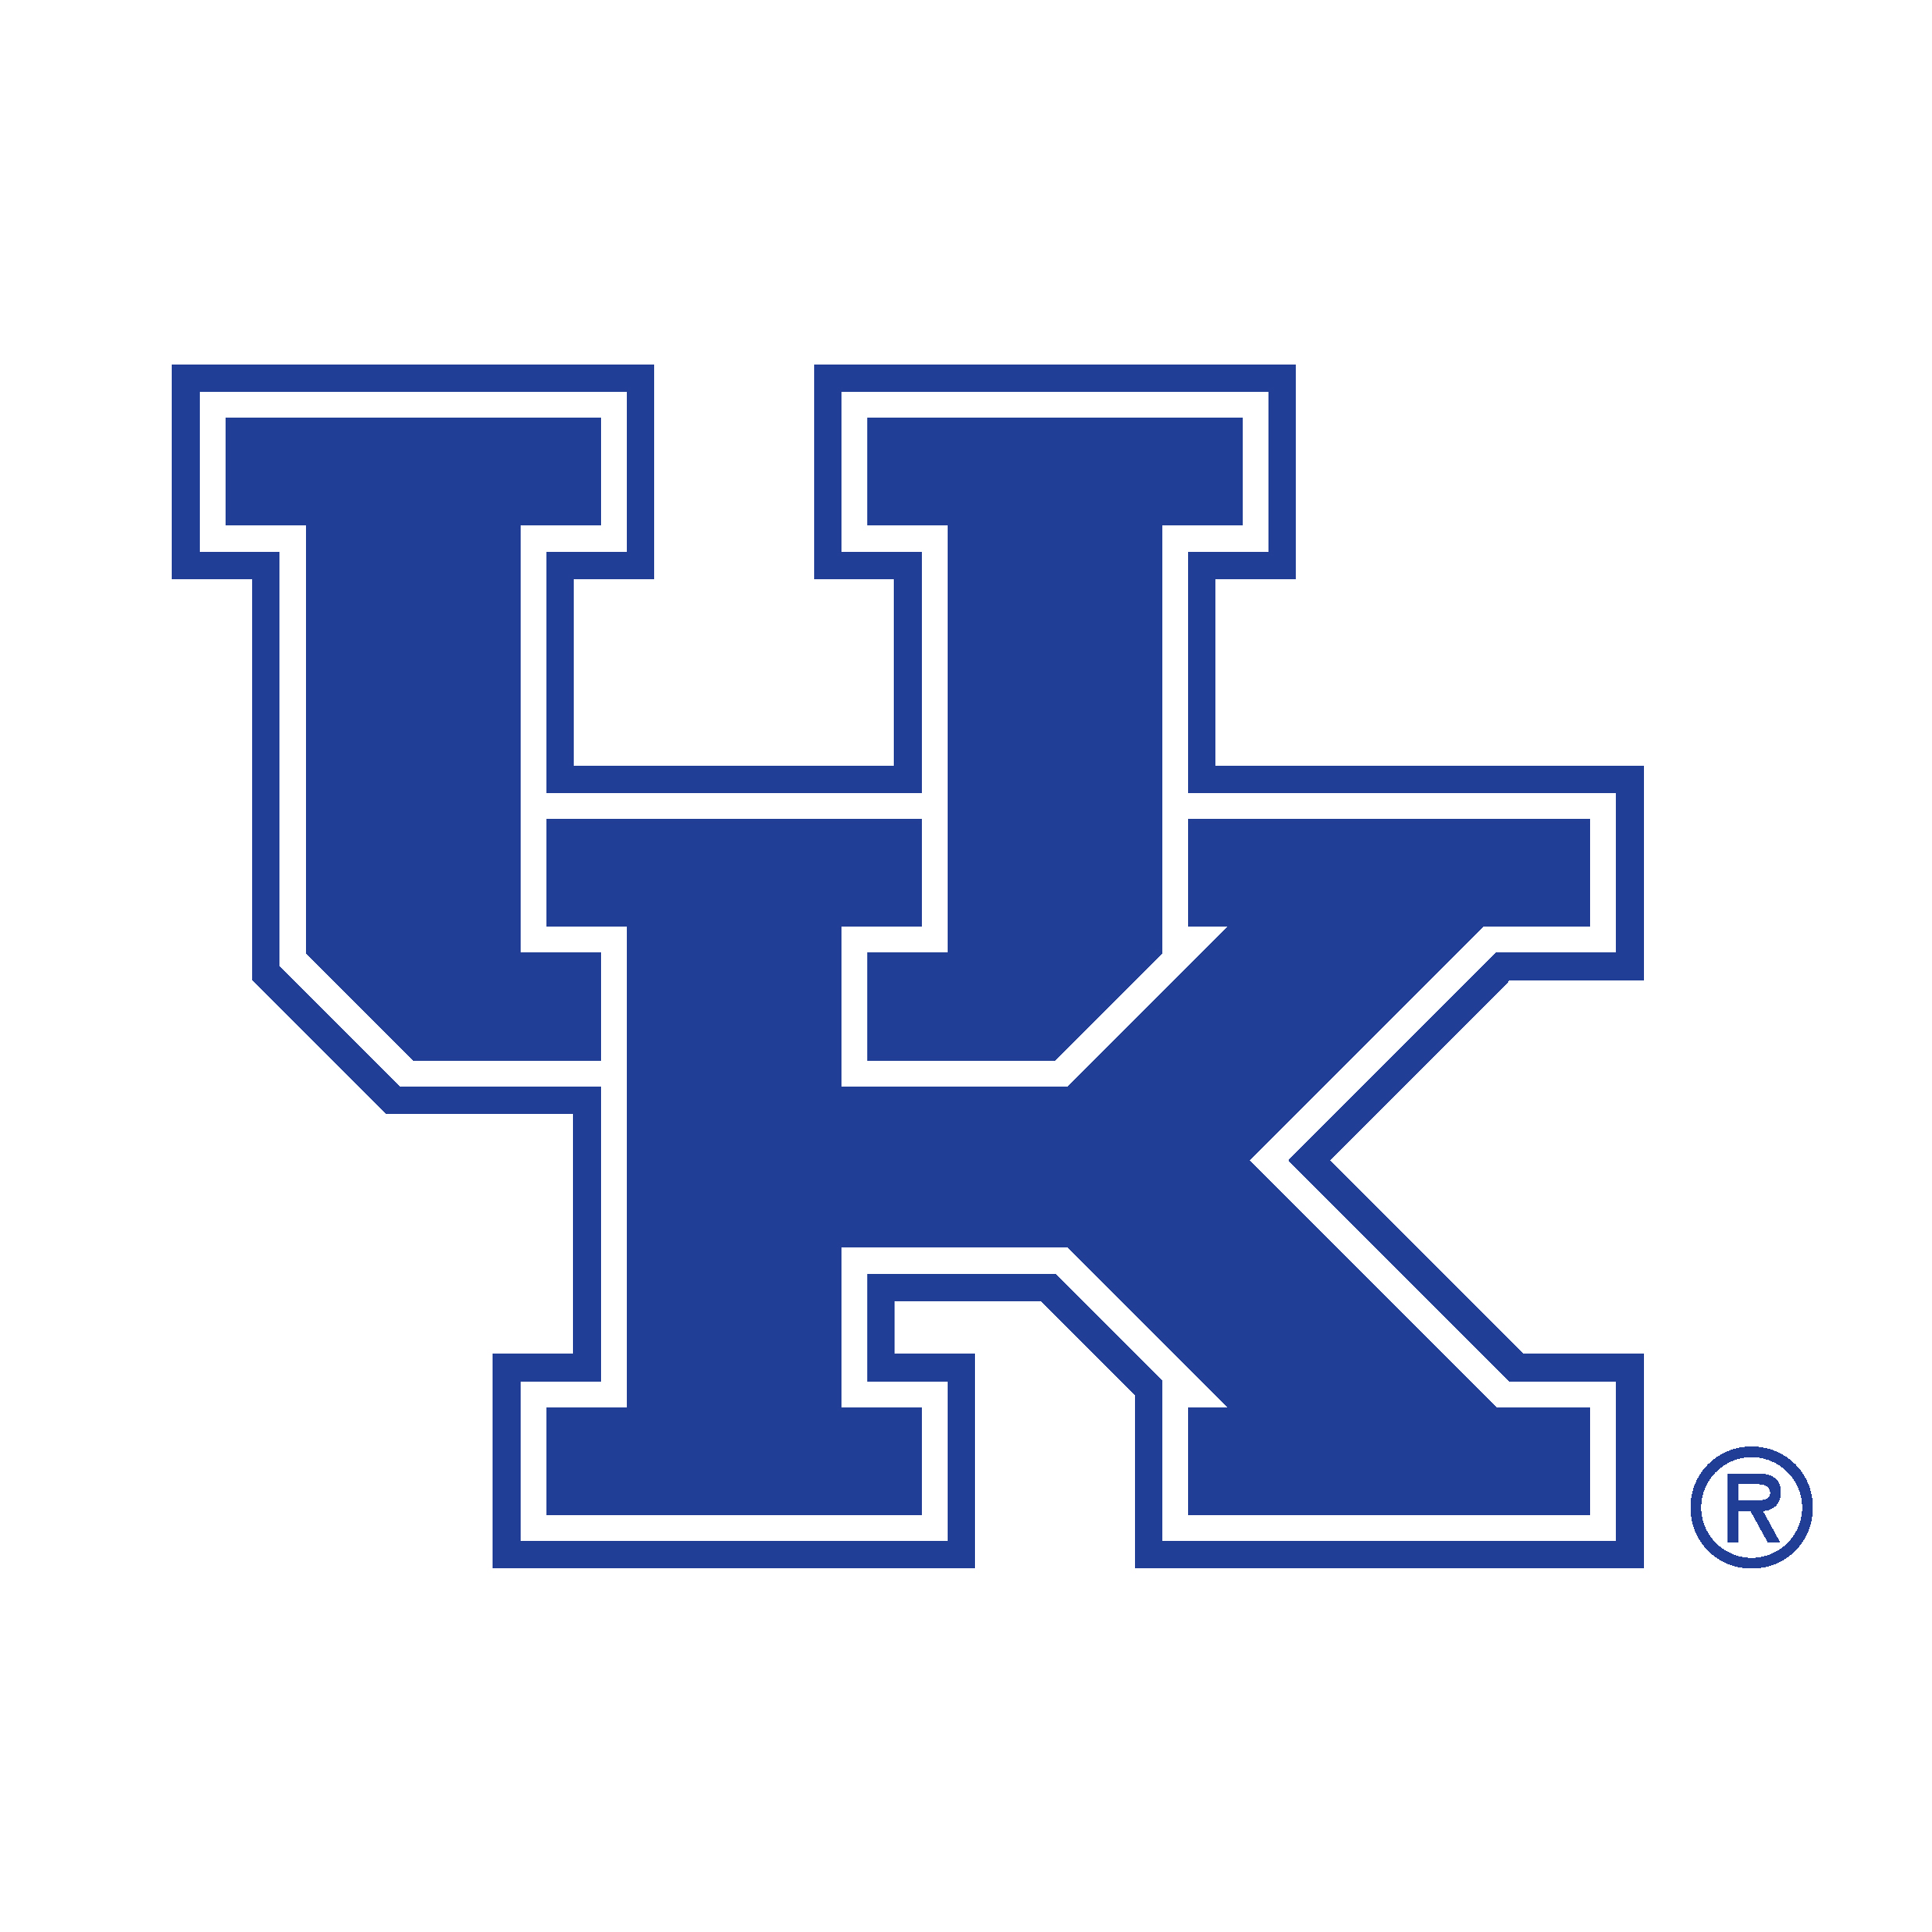 University of Kentucky - University Senate